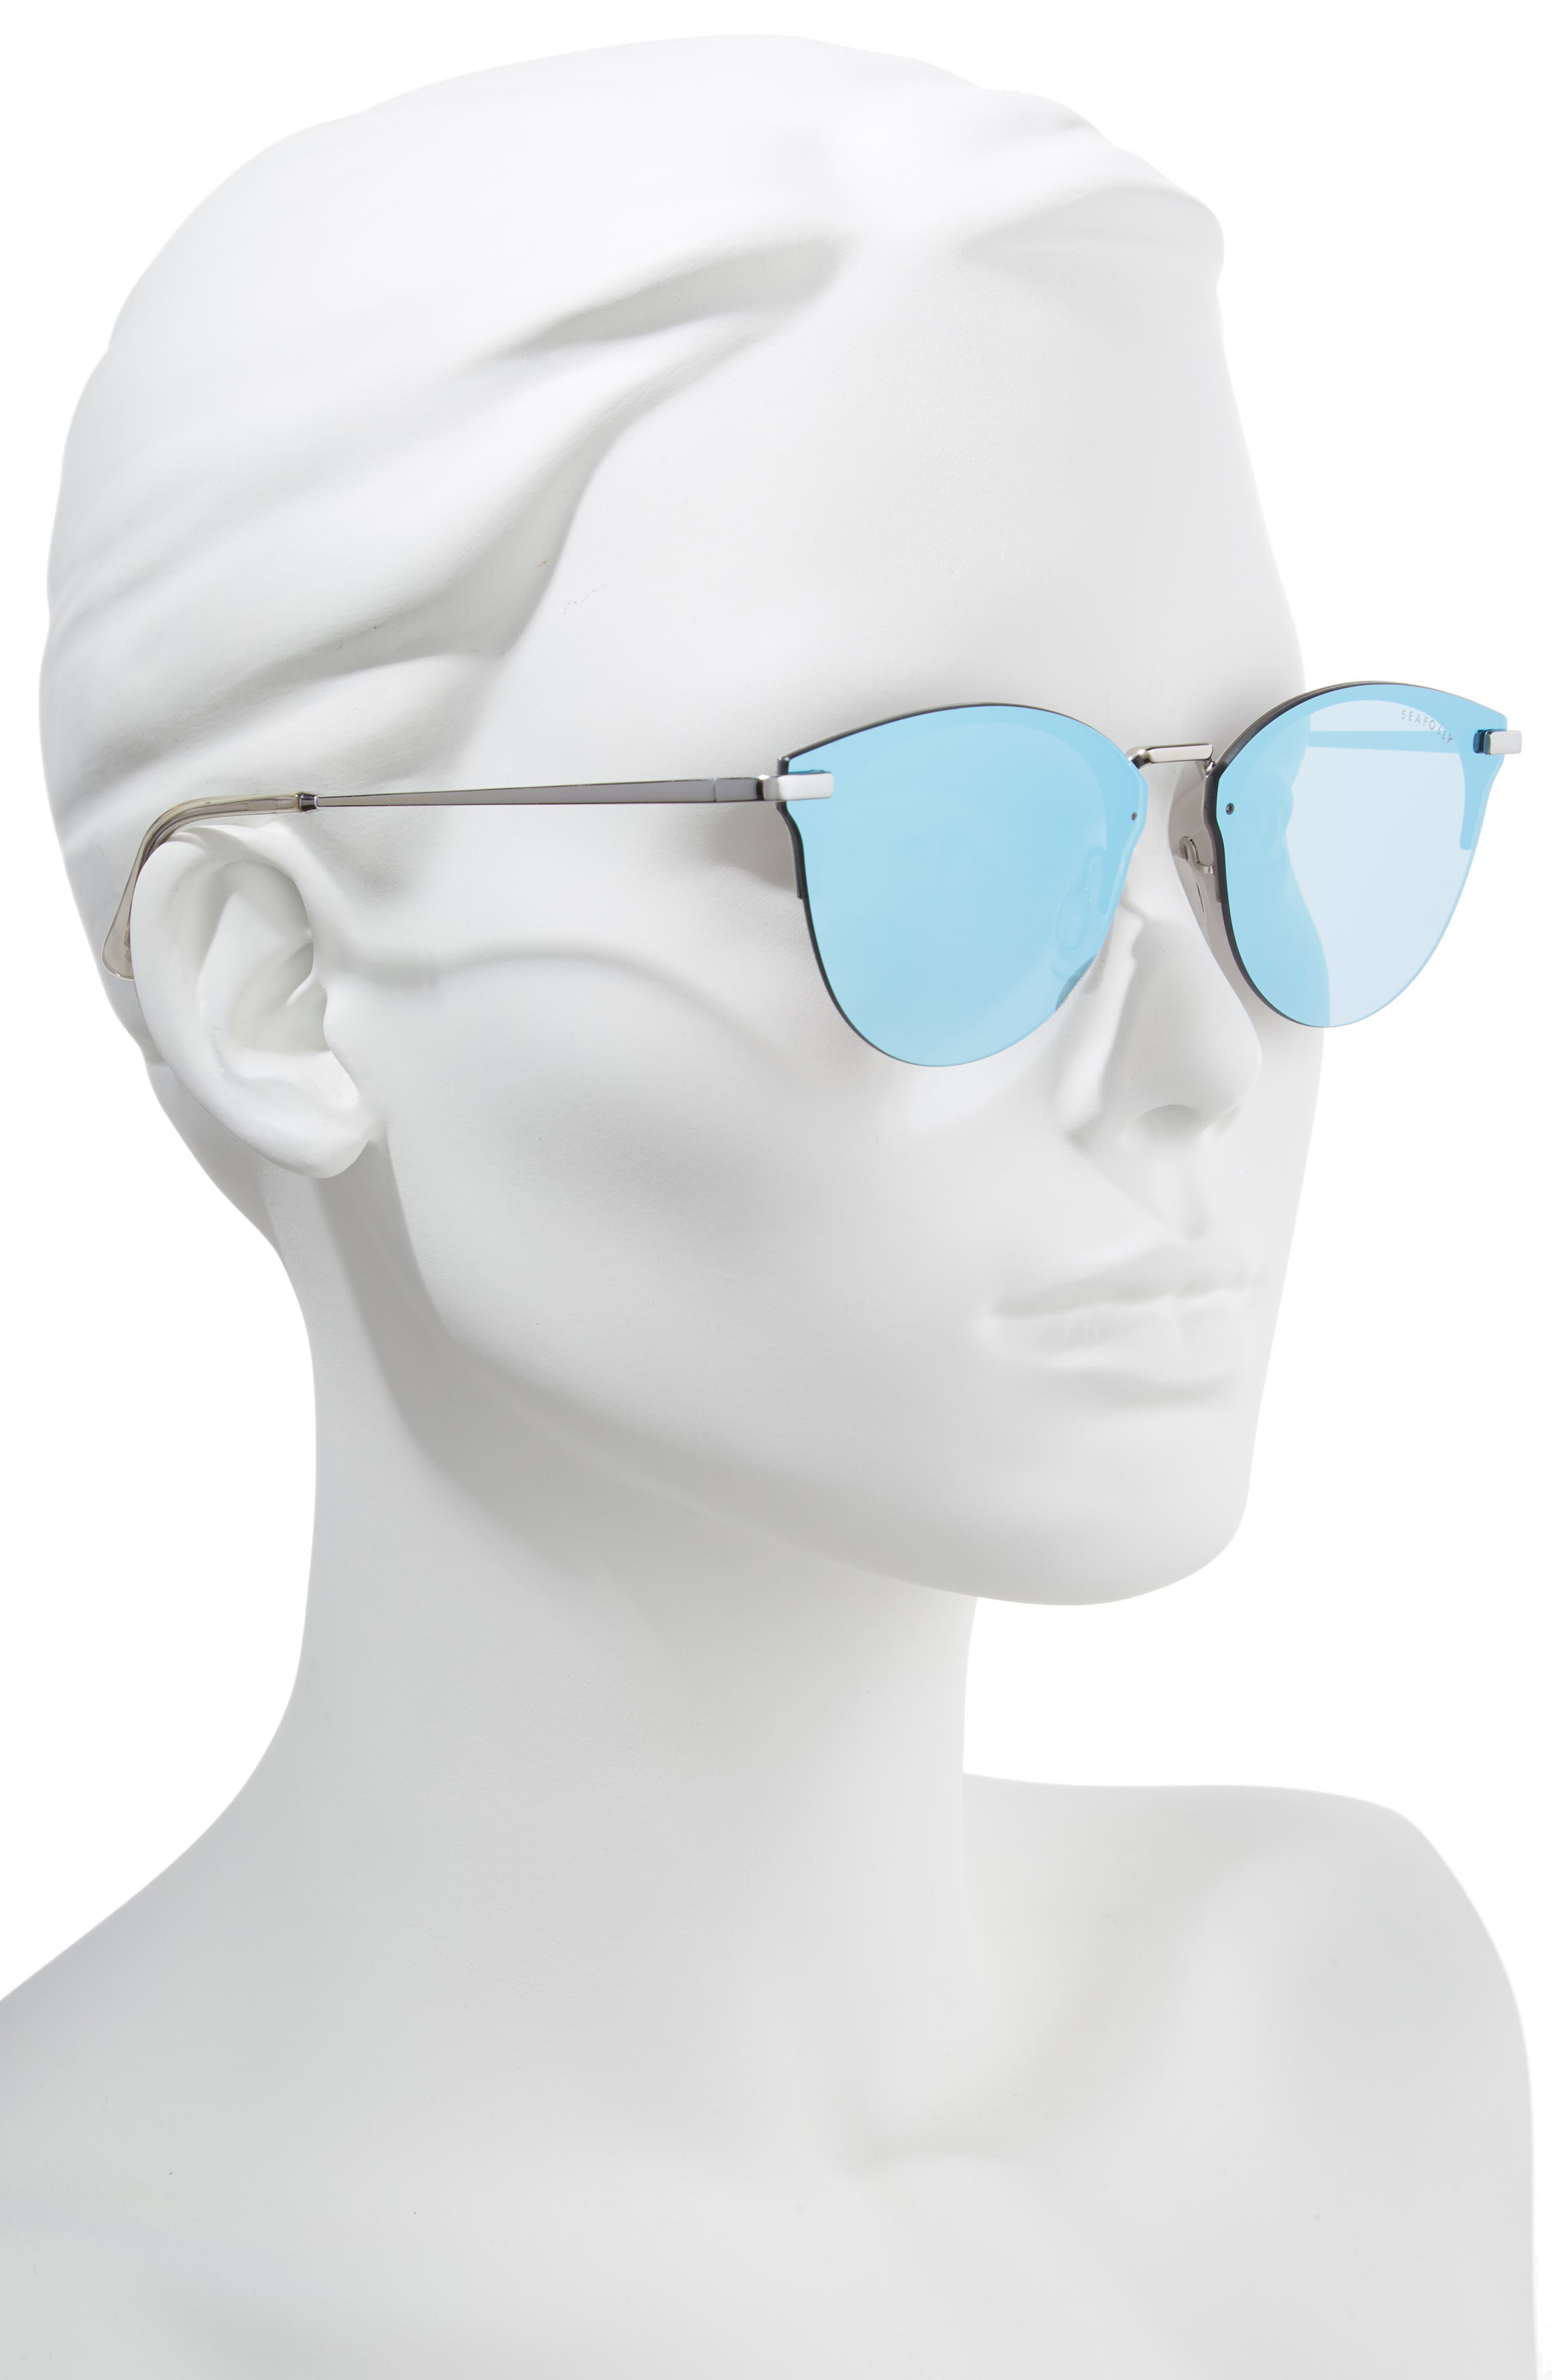 Wylies 50mm Rimless Sunglasses,                             Alternate thumbnail 2, color,                             Ocean